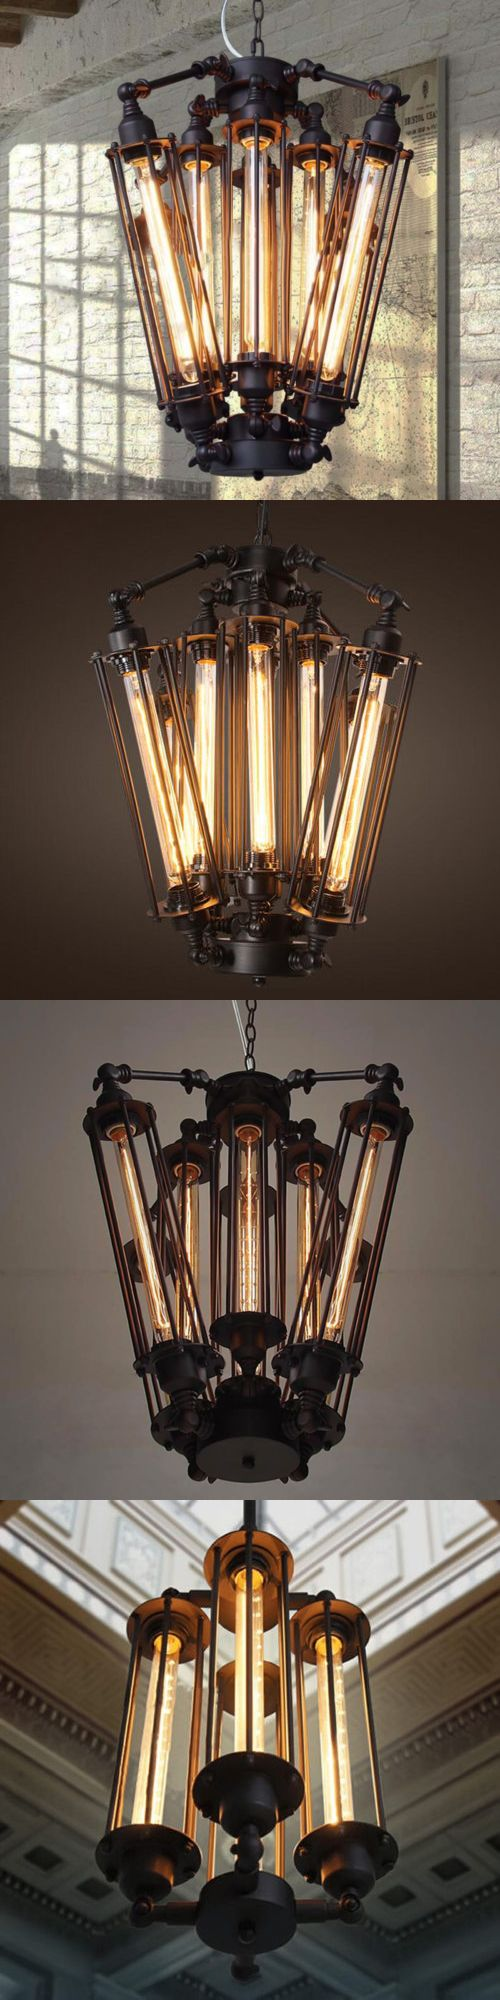 Special vintage style industrial edison ceiling lamp w bulb old - Chandeliers And Ceiling Fixtures 117503 Vintage Industrial Metal Steampunk Chandelier Edison Bulb Pendant Hanging Lamp